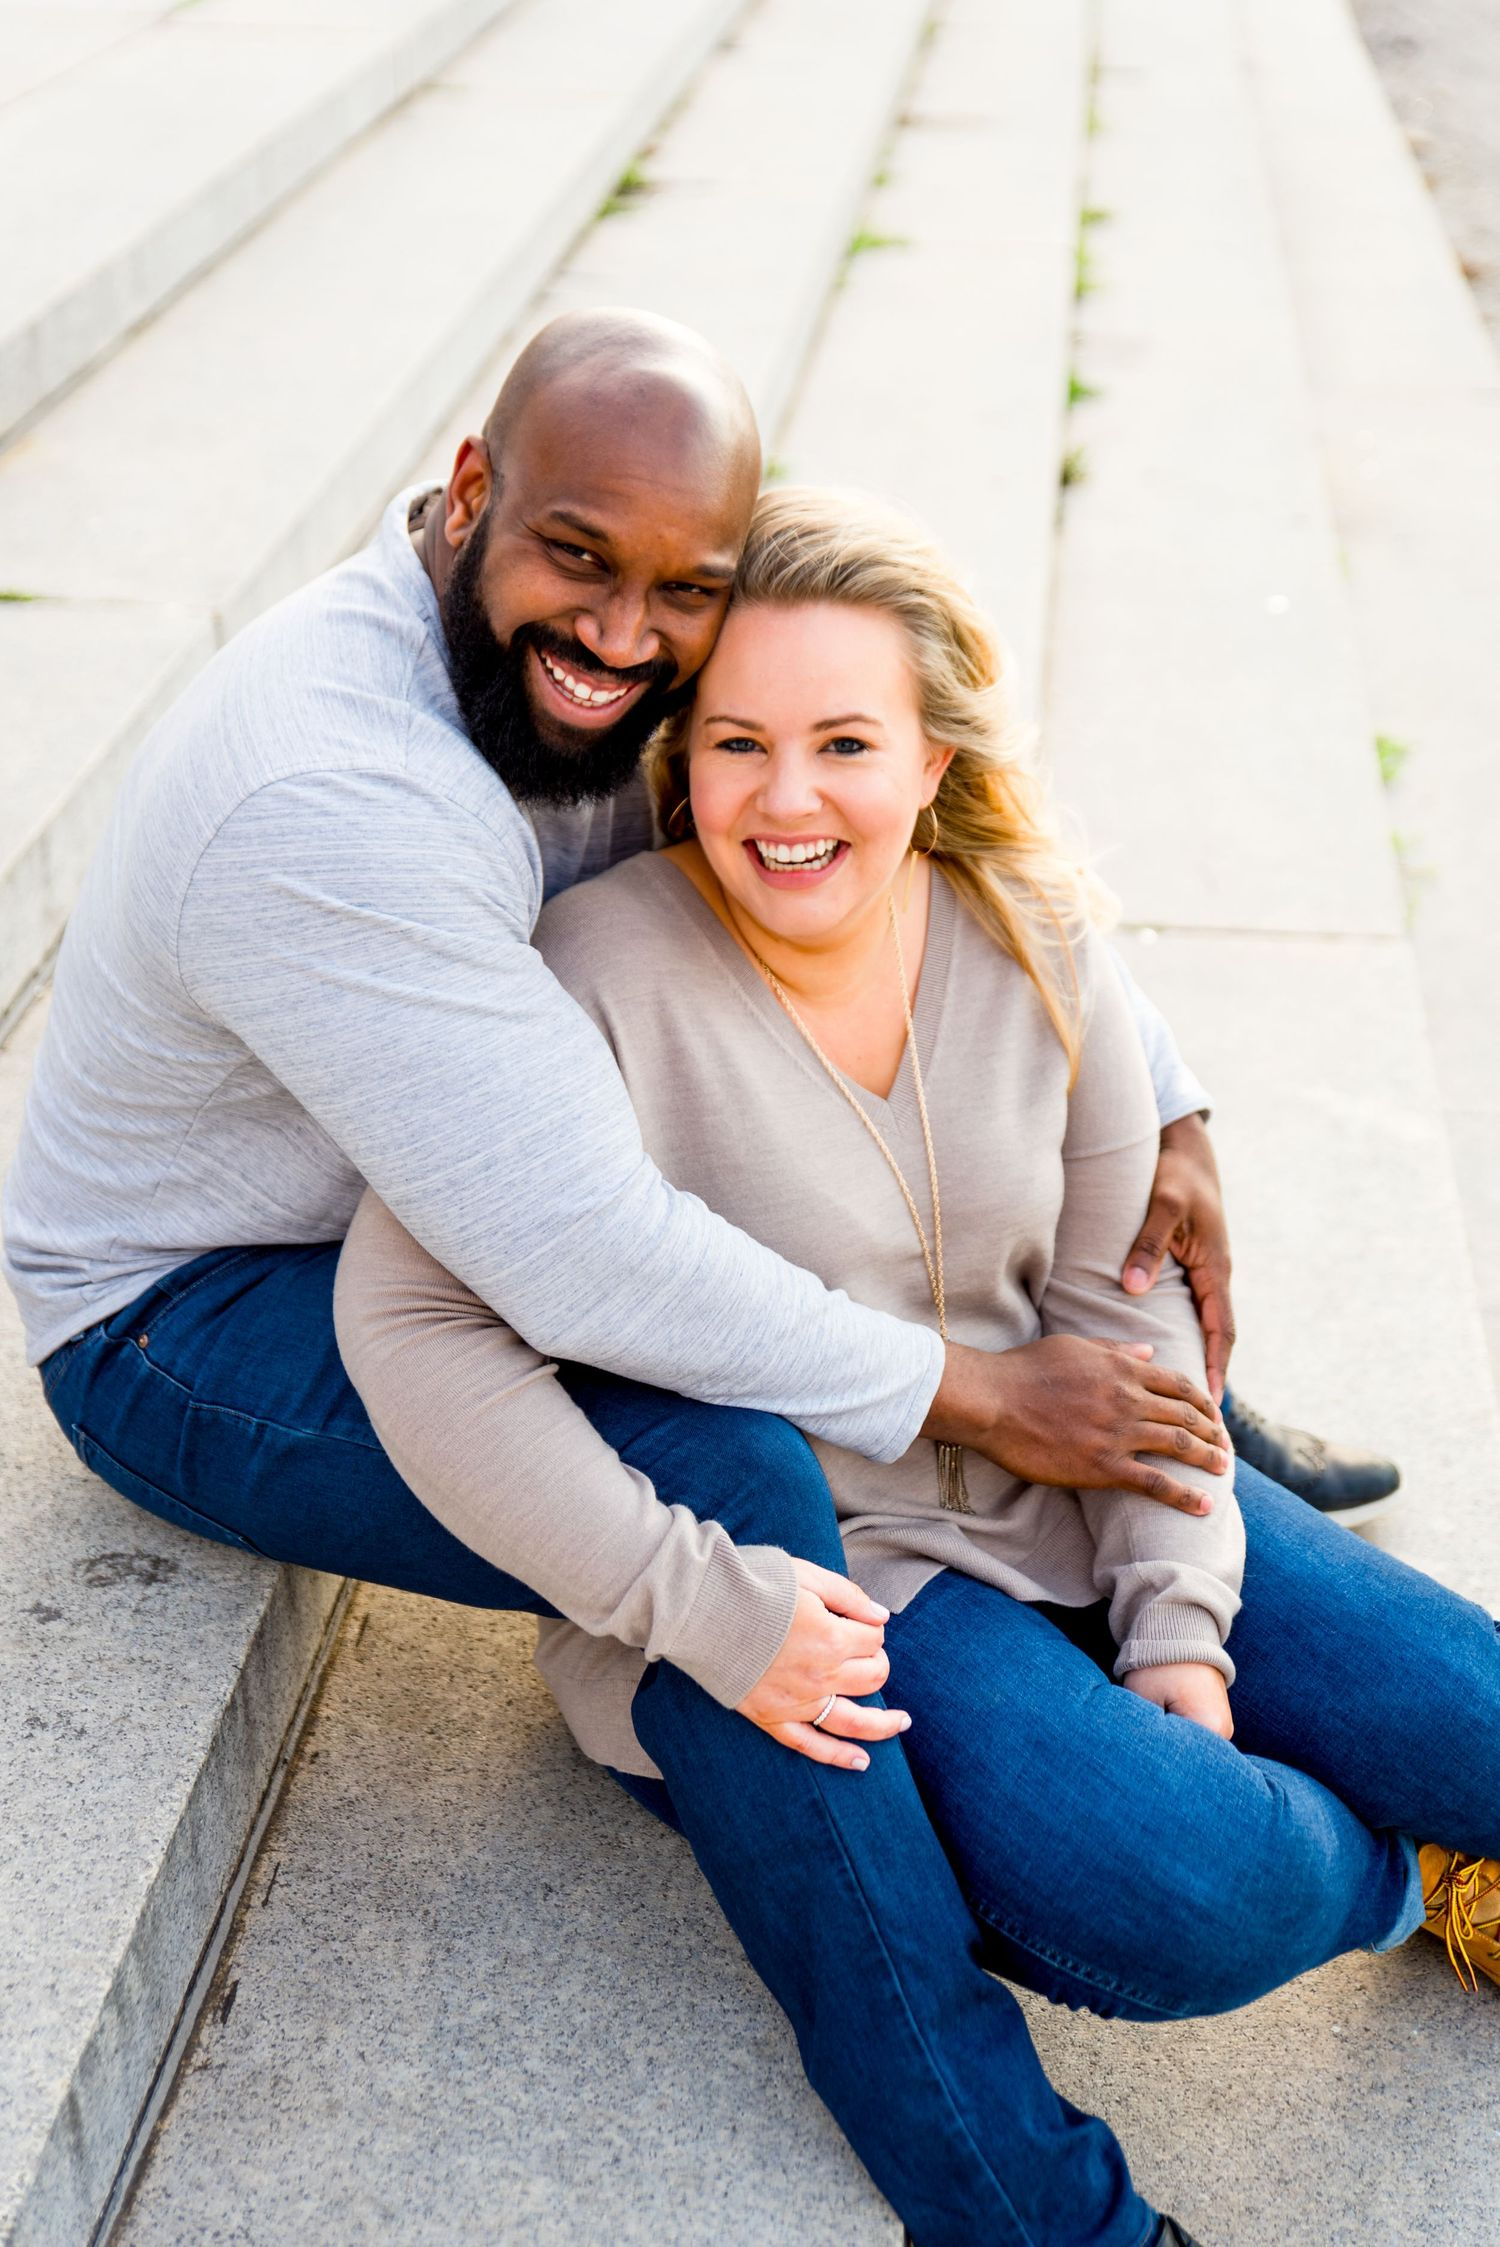 man and woman sitting on stairs in Grant Park laughing during Chicago sunrise engagement photos